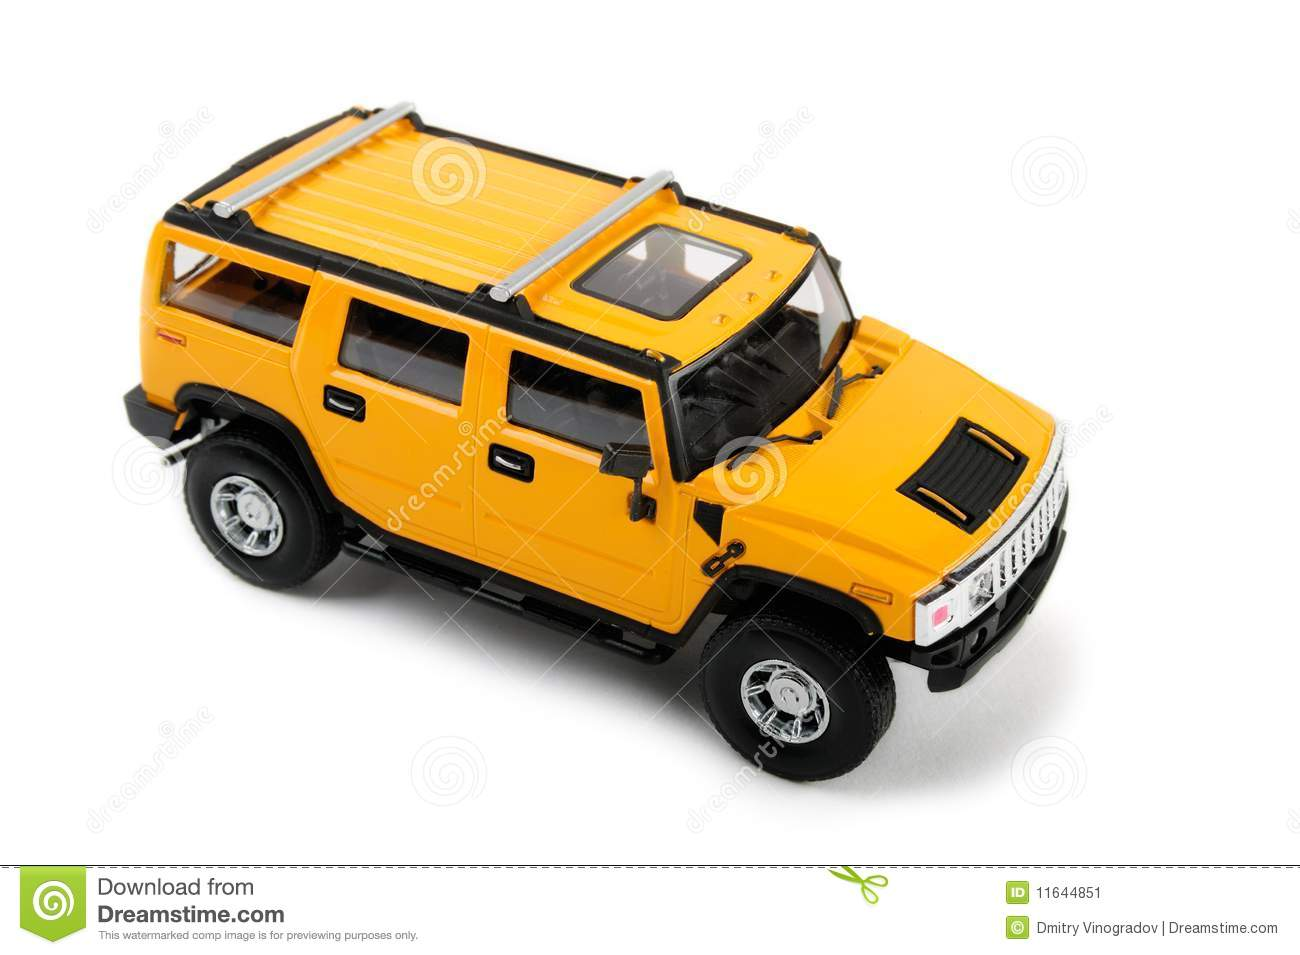 Toy Car Stock Image - Image: 11644851